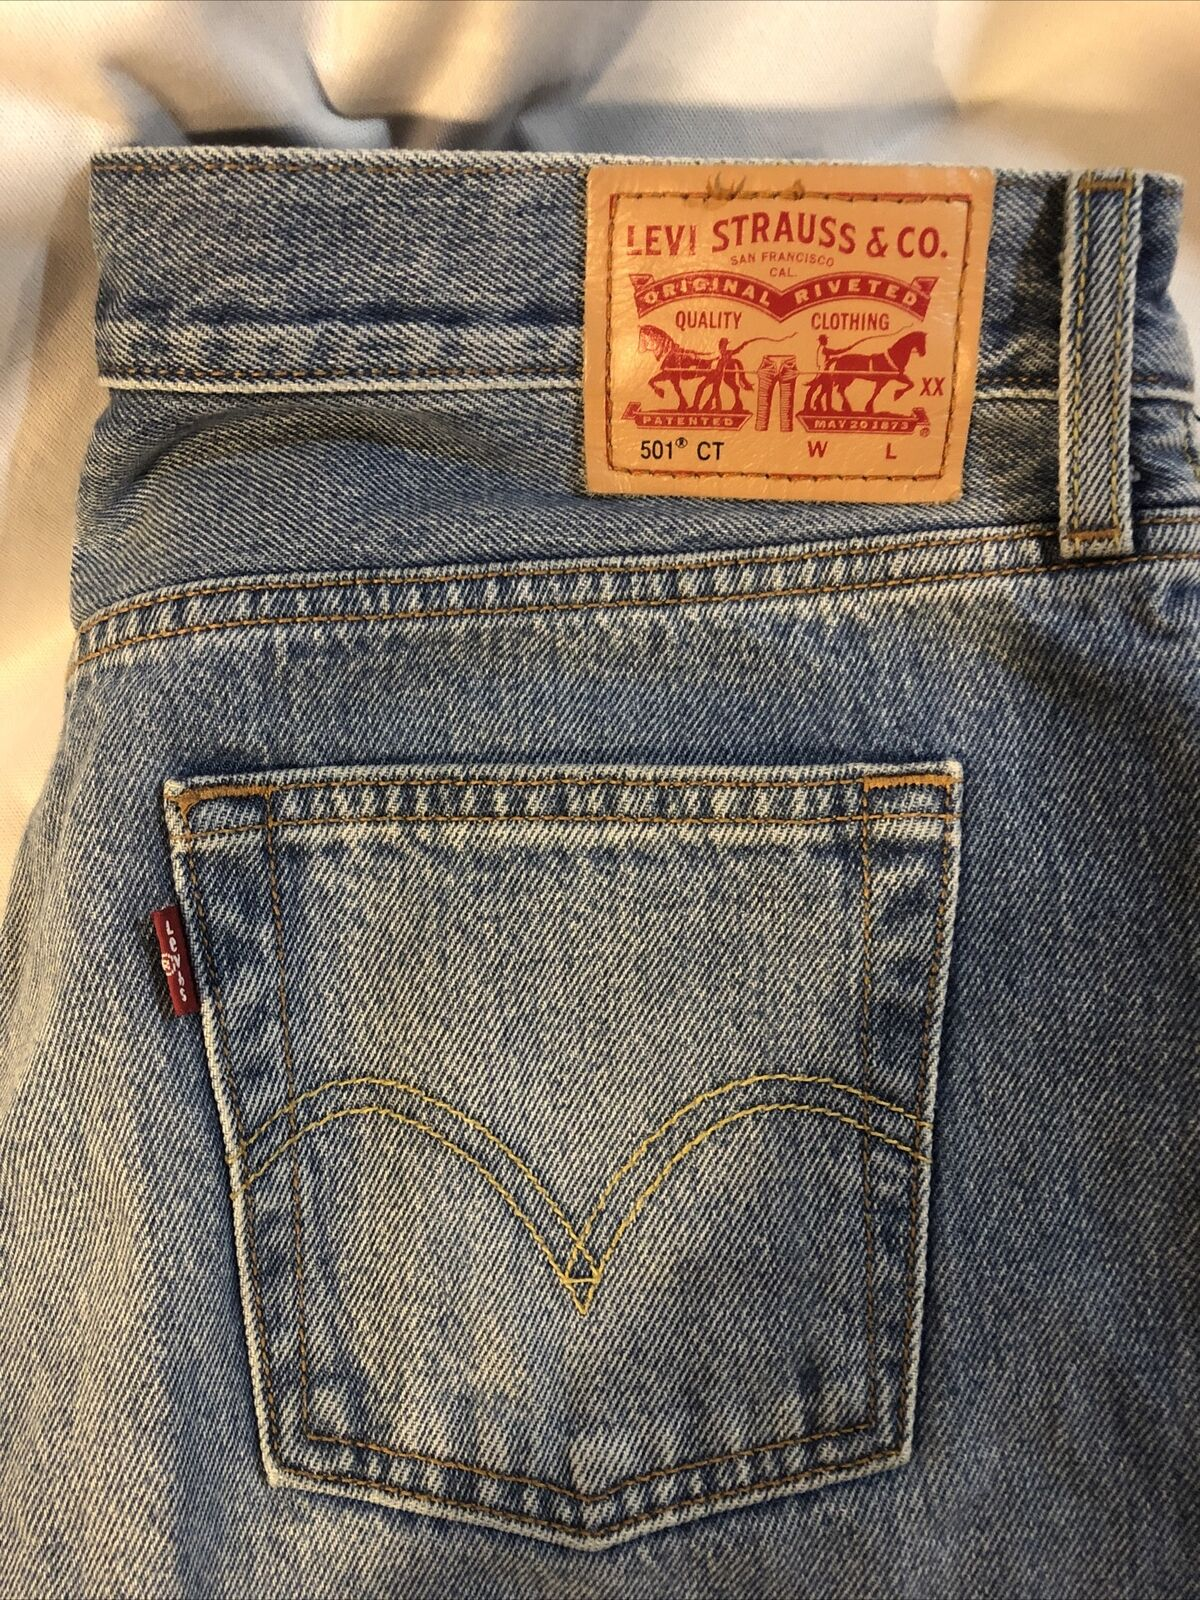 Levis Distressed 501 CT Jeans Size 28/32 - image 2